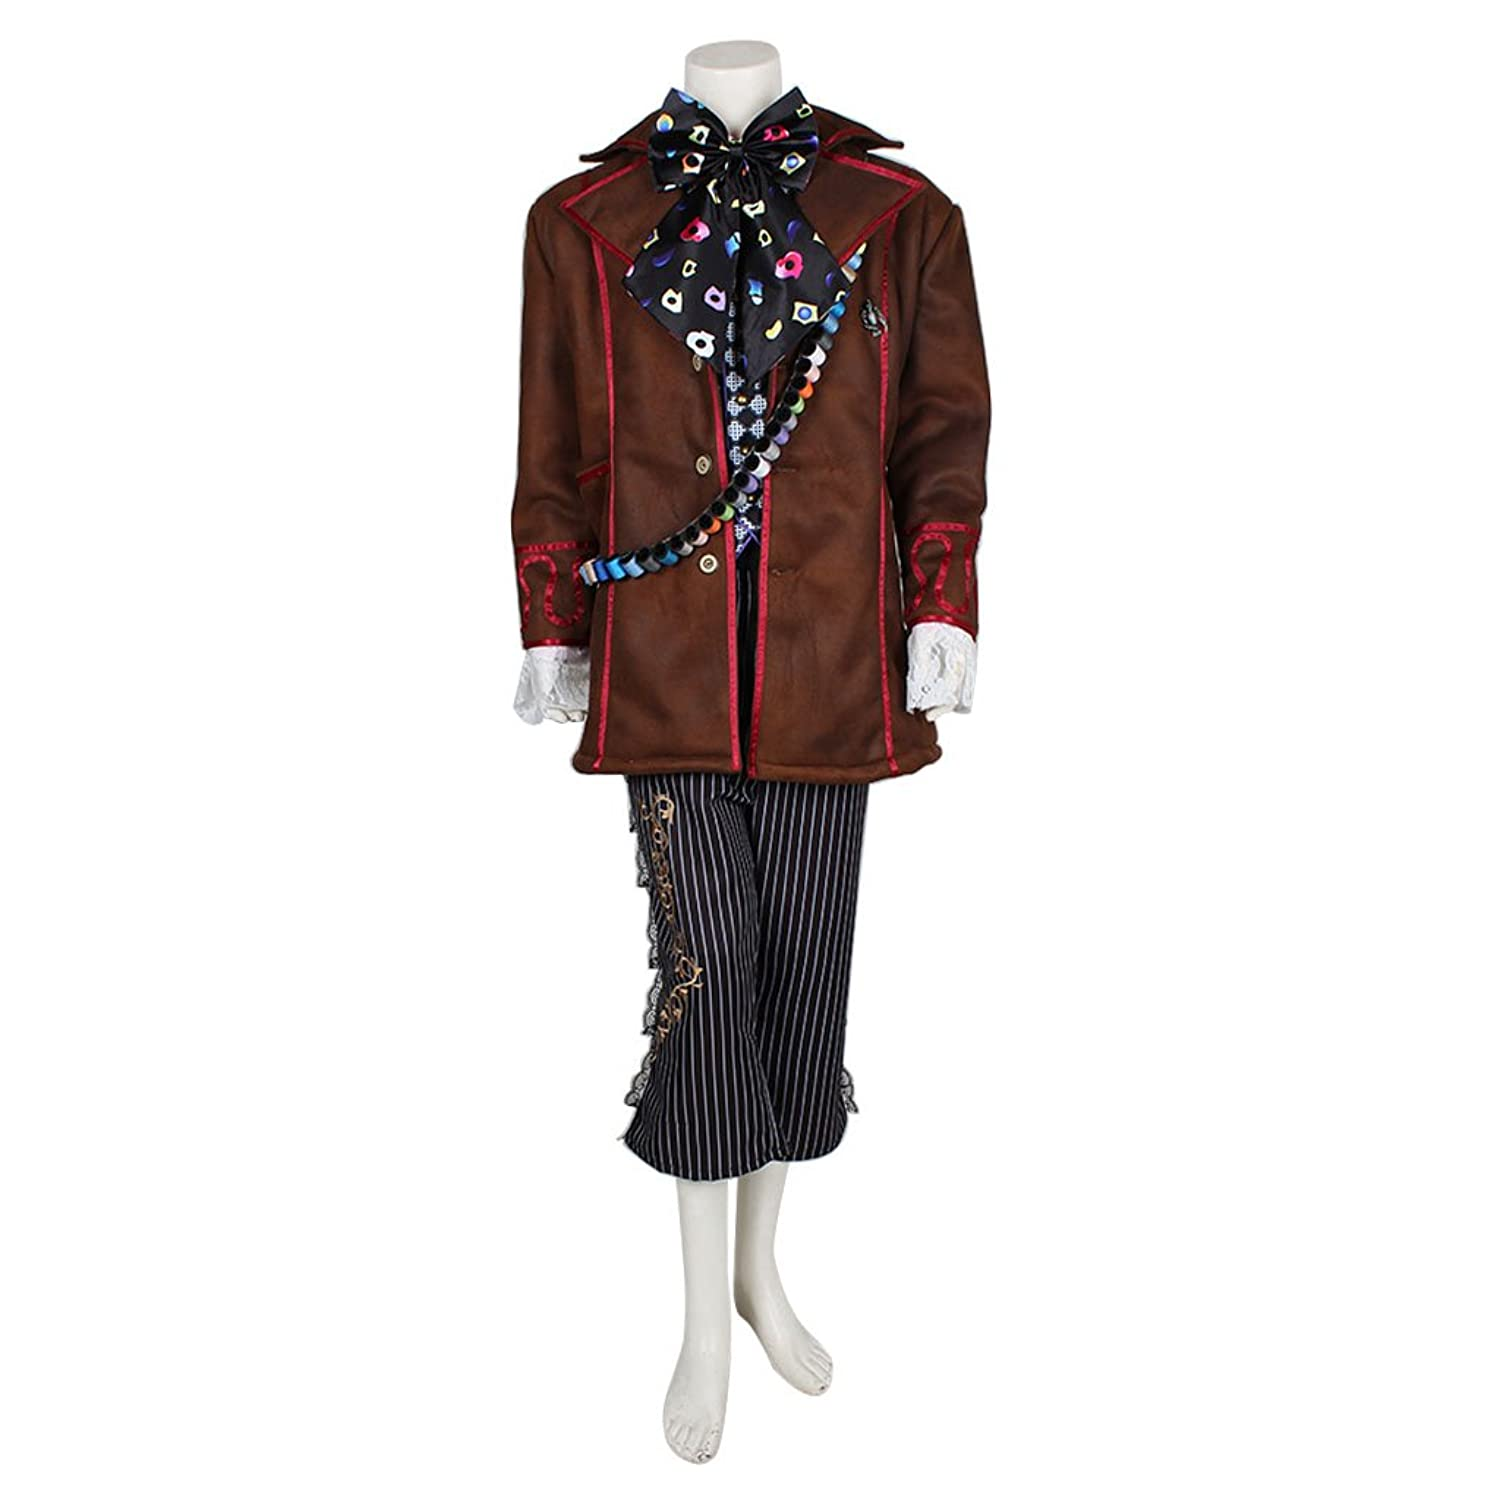 Men's Johnny Depp Mad Hatter Cosplay 6-PC Suit - DeluxeAdultCostumes.com